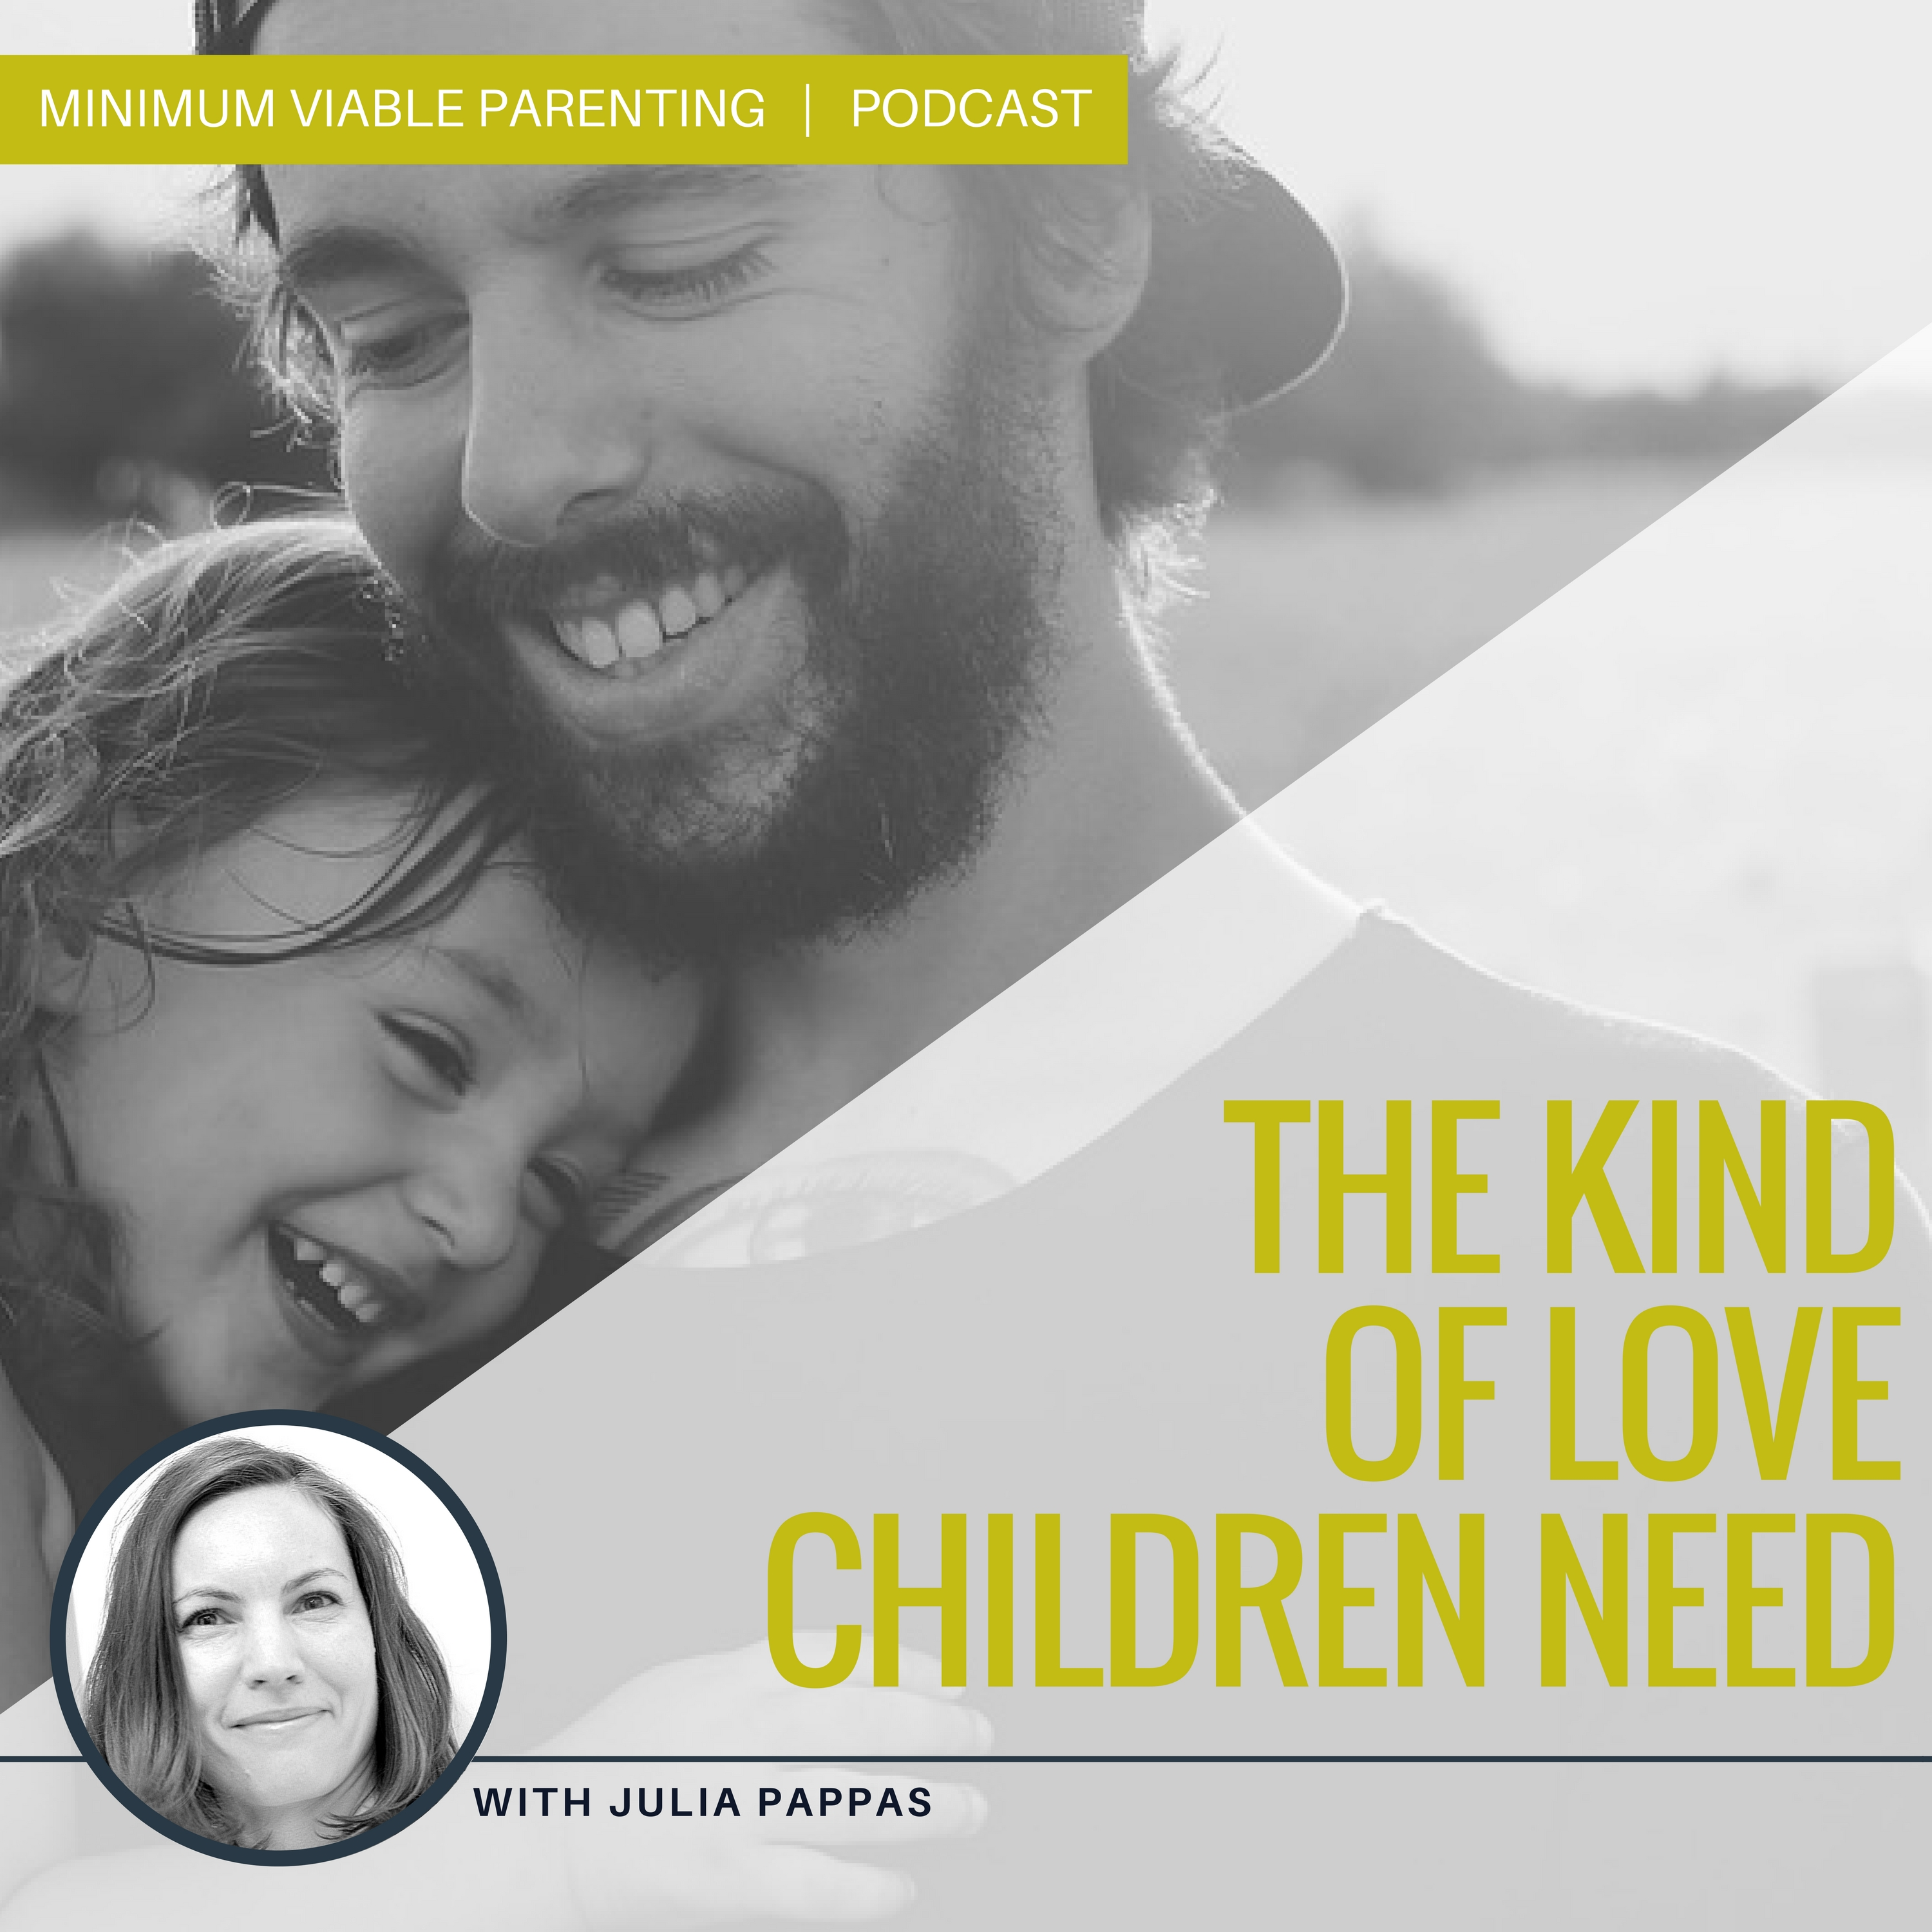 Episode #6: What Kind of Love do Children Need?